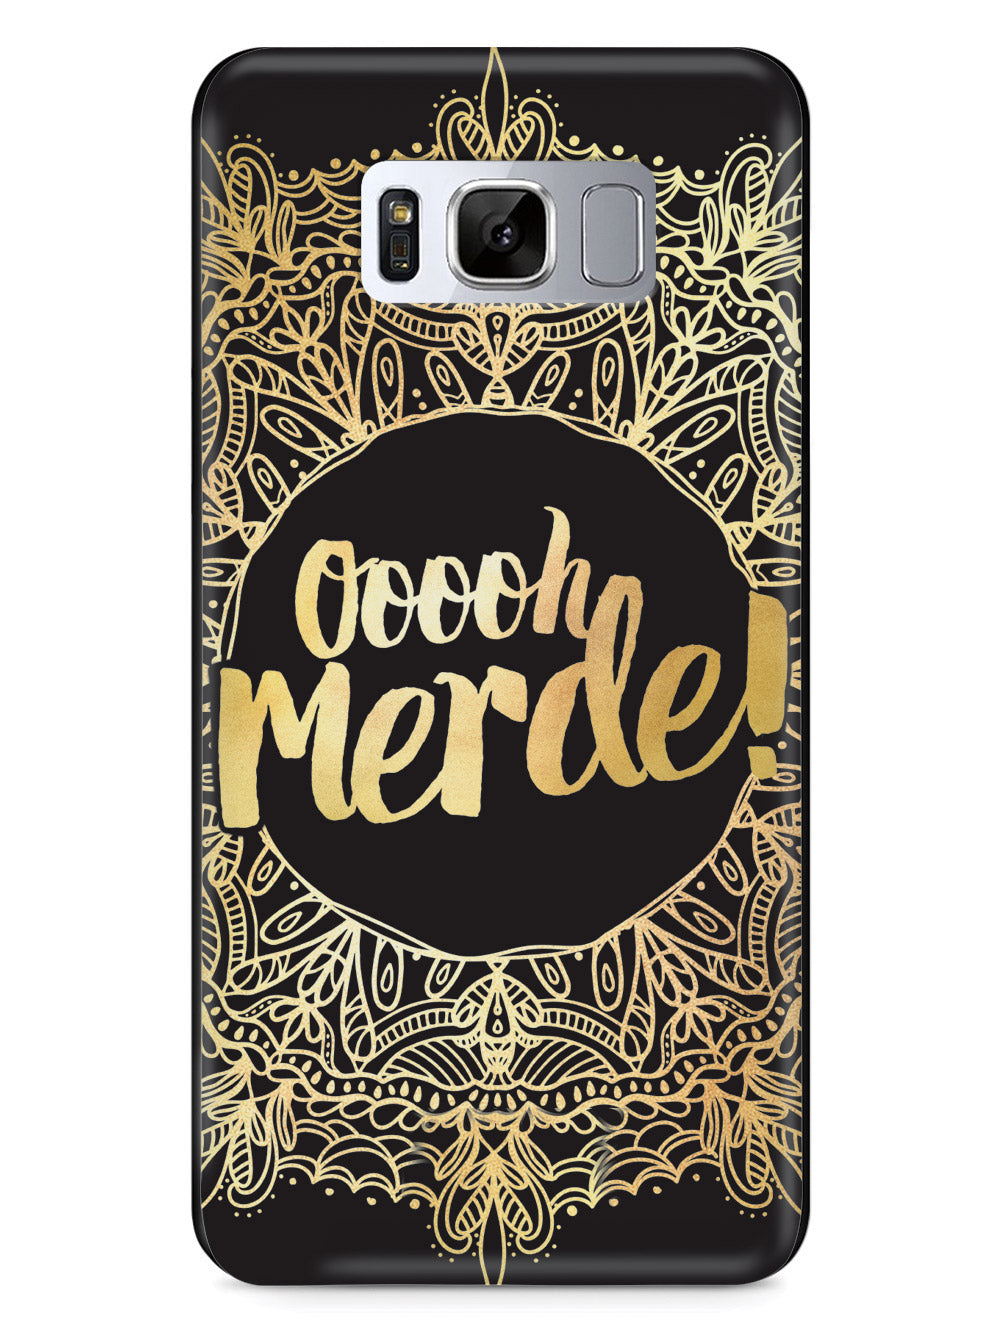 Pardon My French - Oh Merde Case